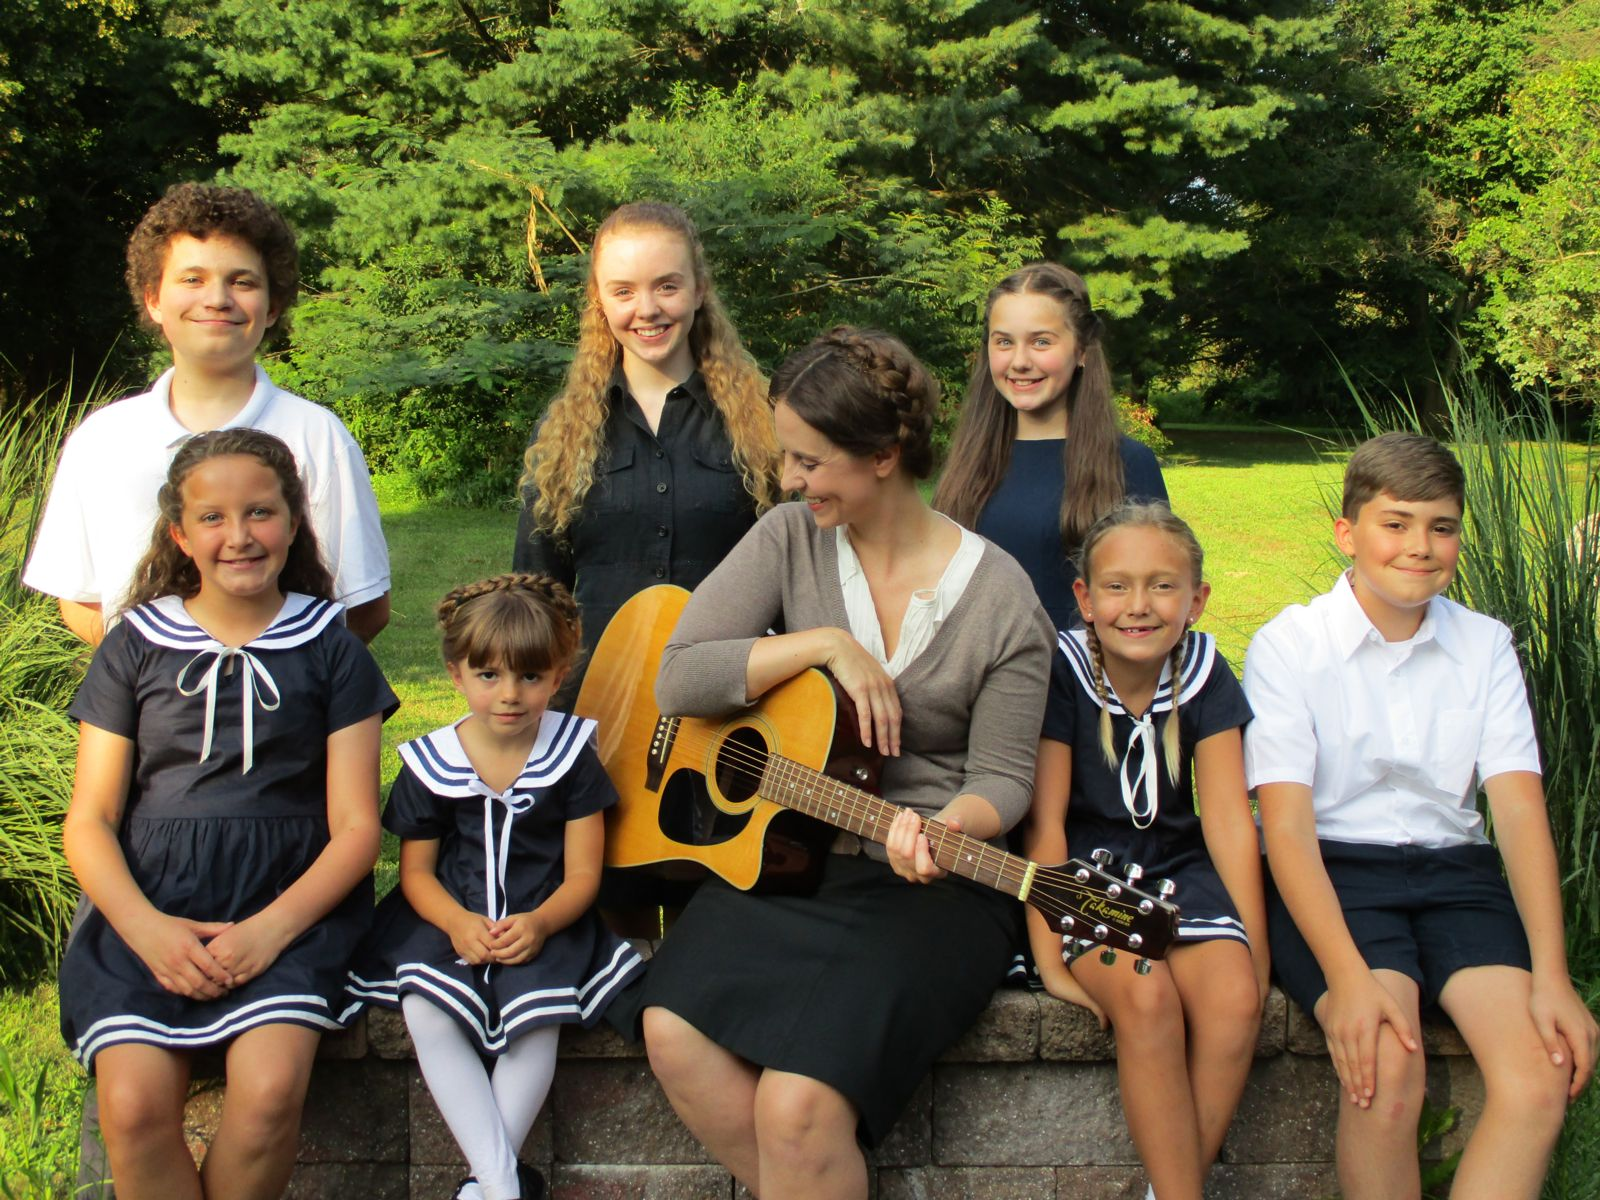 The Sound of Music' at Kelsey Theatre Sept  12 - 22